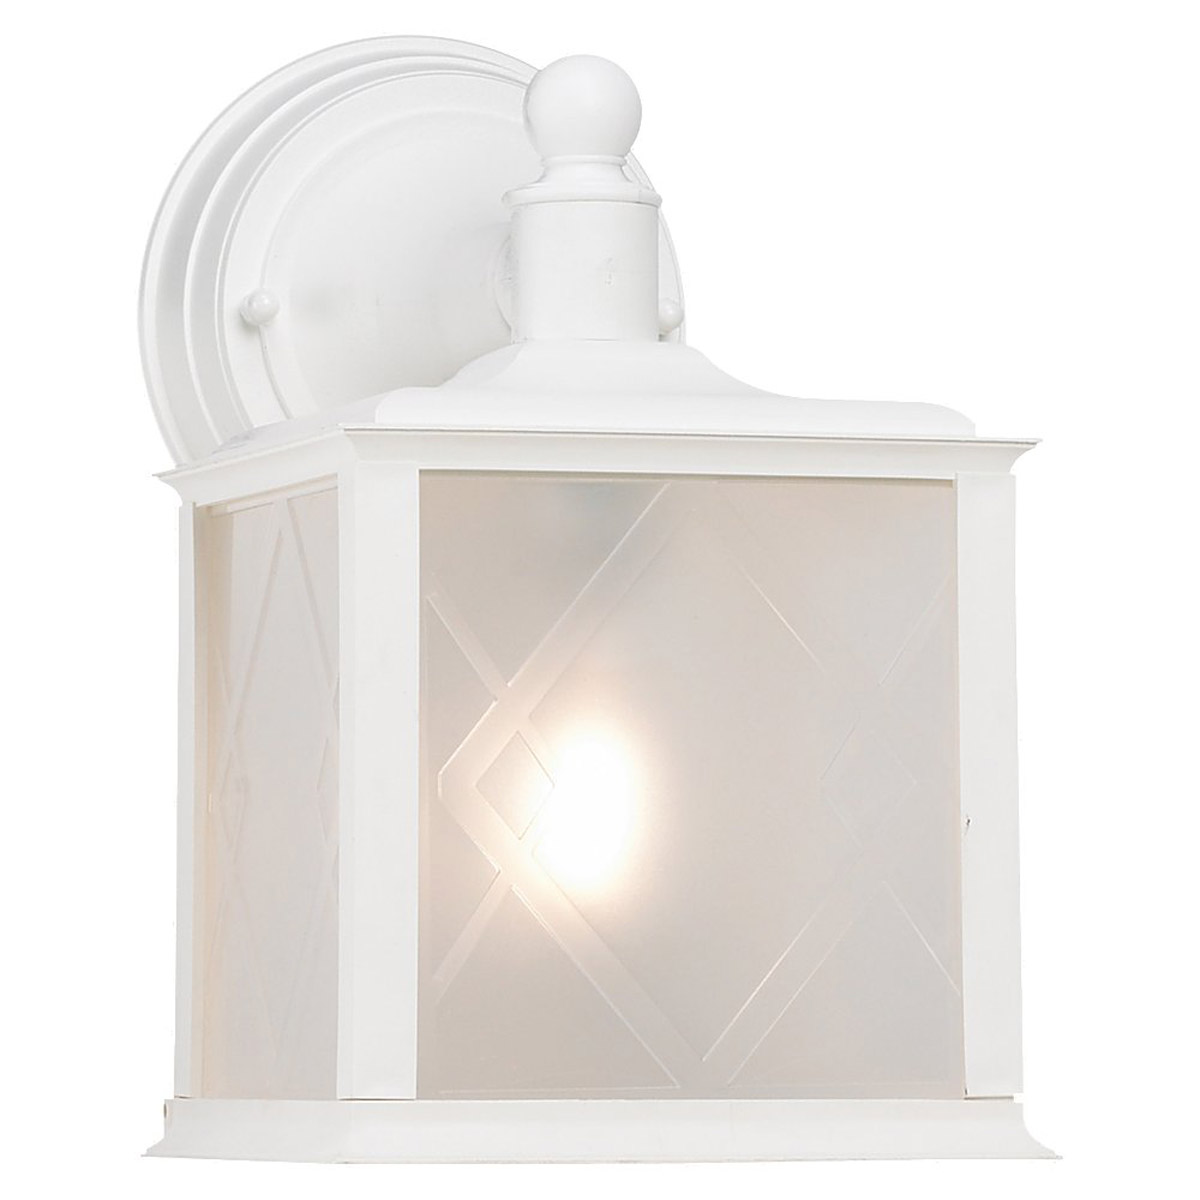 Sea Gull Lighting Harbor Point 1 Light Outdoor Wall Lantern in White 88098-15